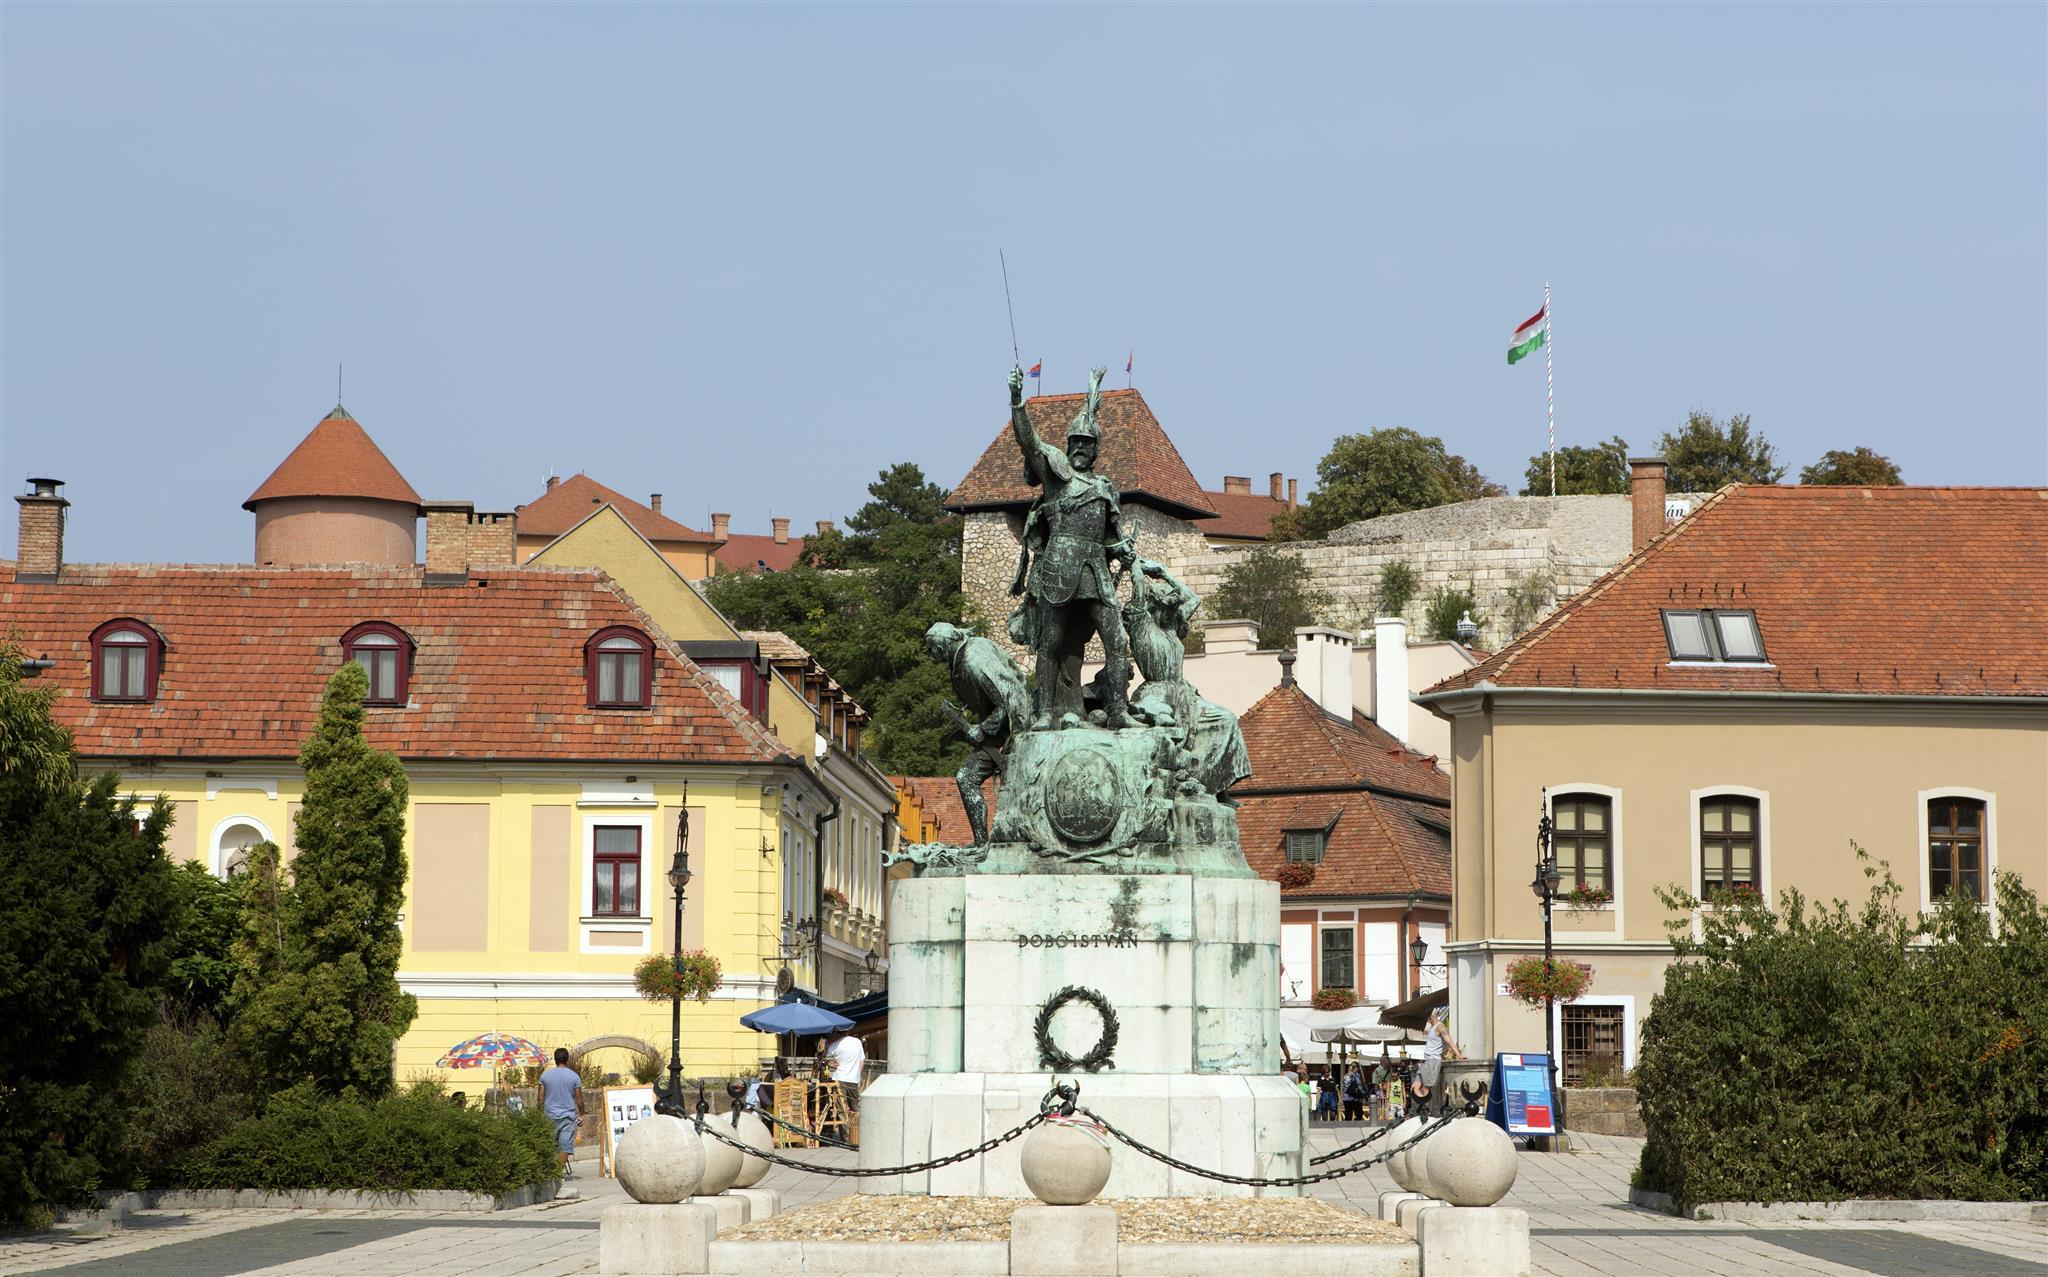 10 Best Eger Hotels Hd Photos Reviews Of Hotels In Eger